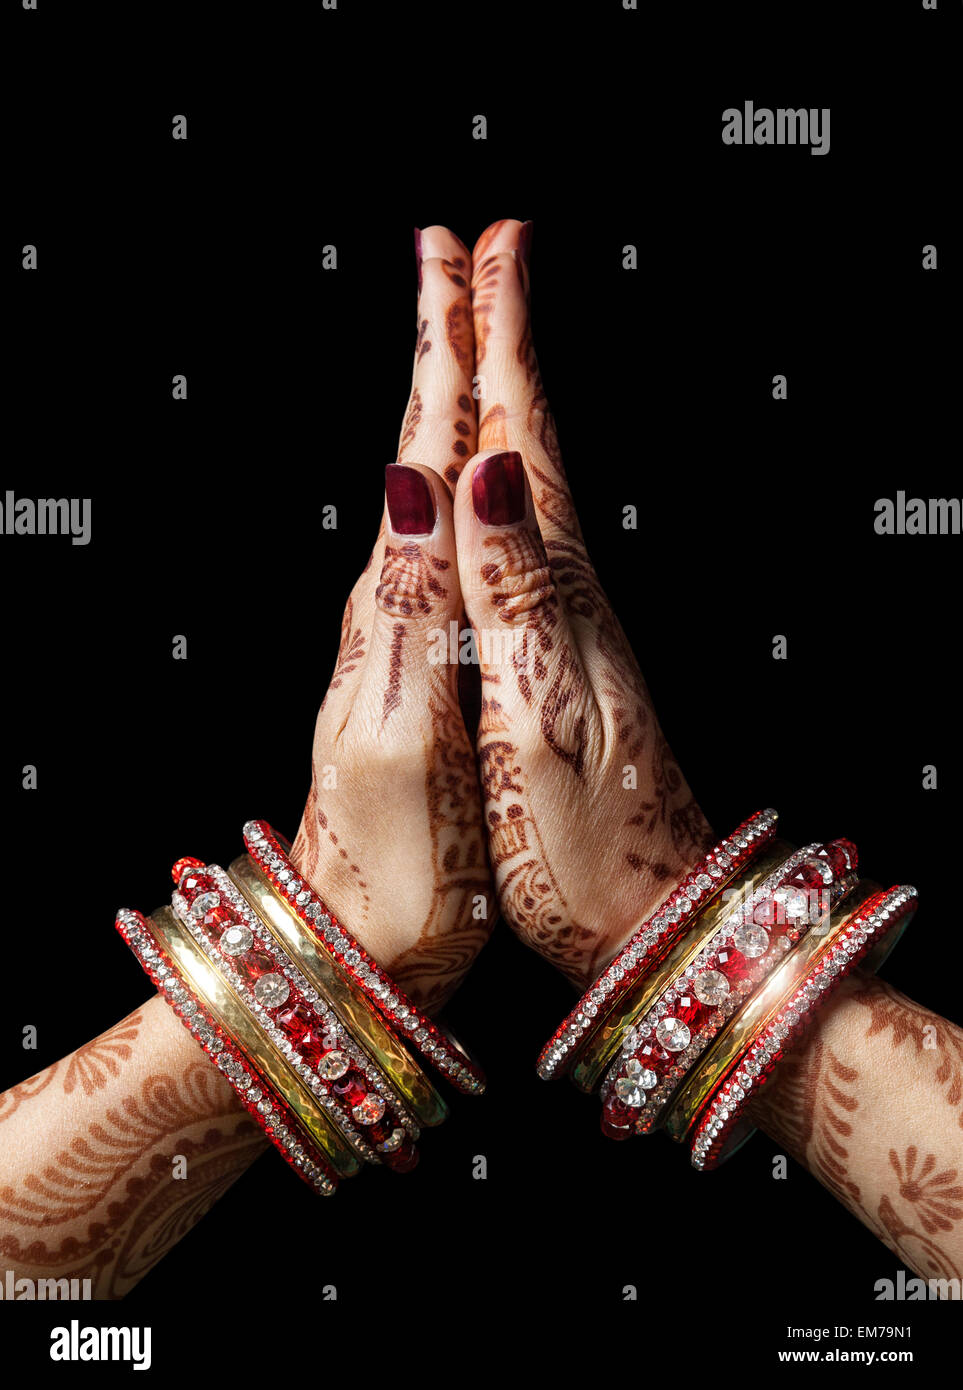 Woman hands with henna in Namaste mudra on black background Stock Photo